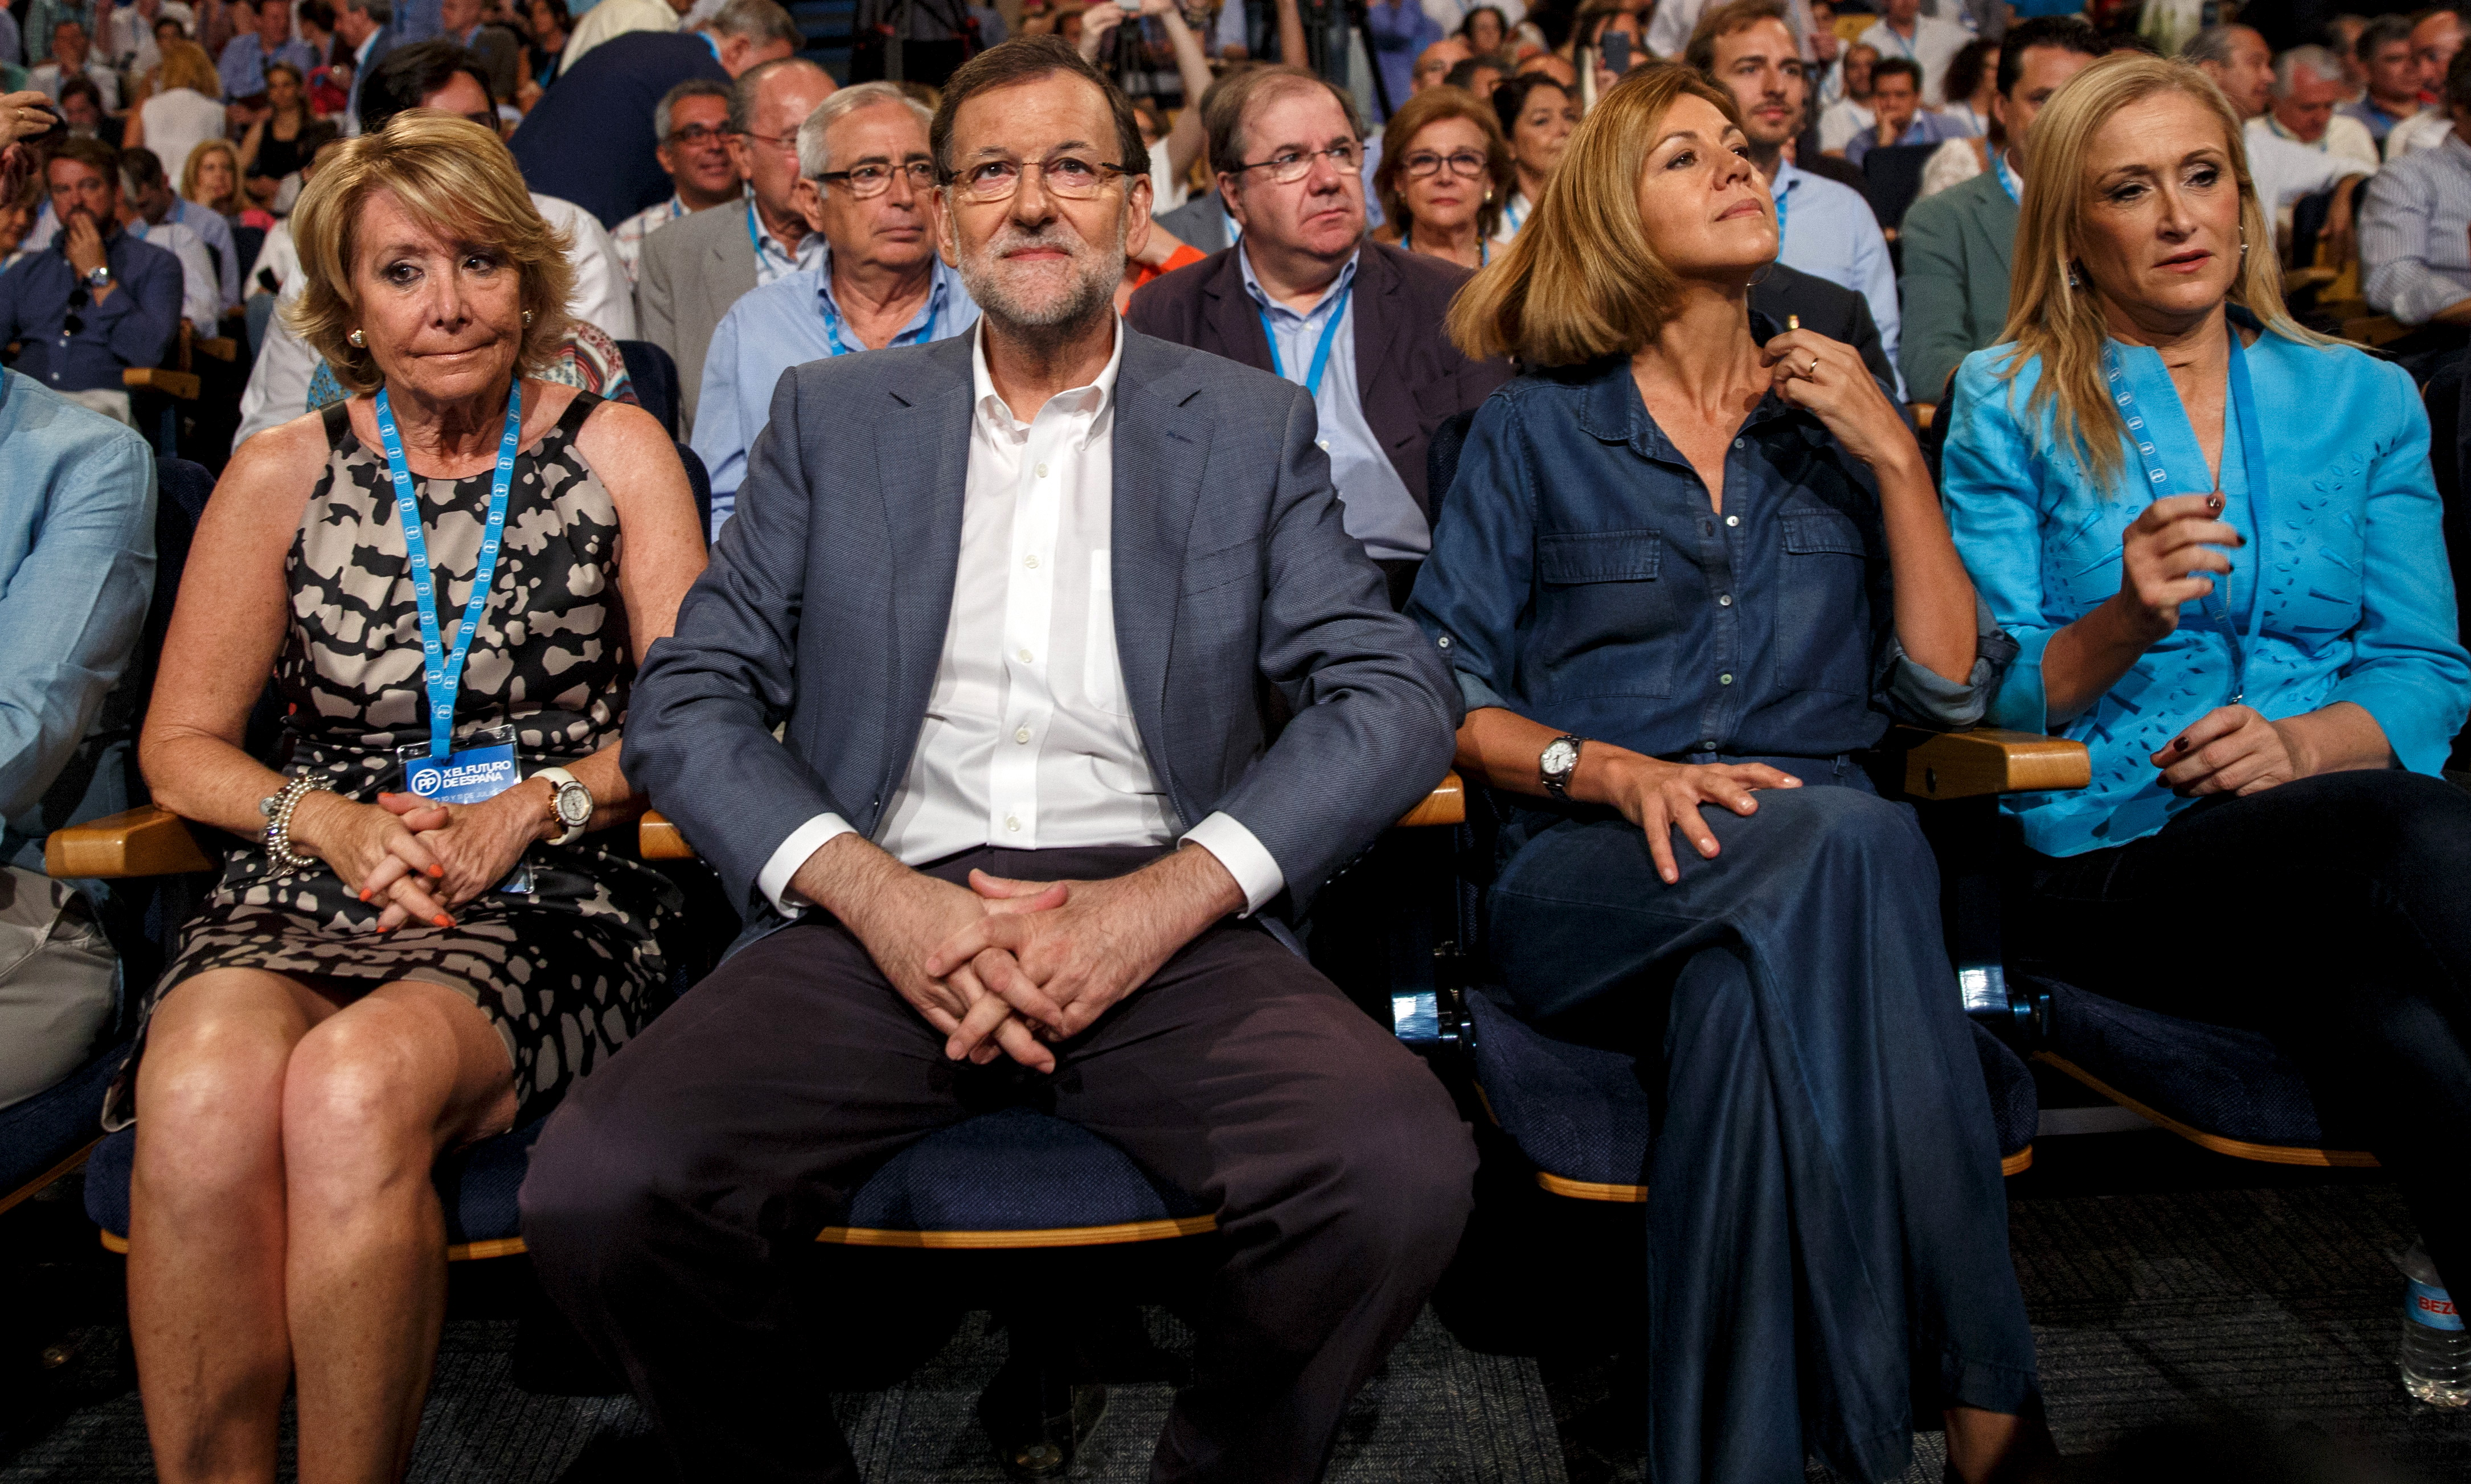 L-R: Madrid town hall councillor Esperanza Aguirre, Prime Minister Mariano Rajoy, People's Party (PP) party secretary, Maria Dolores de Cospedal and Madrid regional president Cristina Cifuentes attend a party rally in Madrid, Spain, July 11, 2015. Spain said on Friday it would cut central government spending further in 2016, offsetting broad-based tax cuts unveiled last week as it looks to keep a healthy economic recovery on track ahead of national elections. REUTERS/Andrea Comas - RTX1JZCM